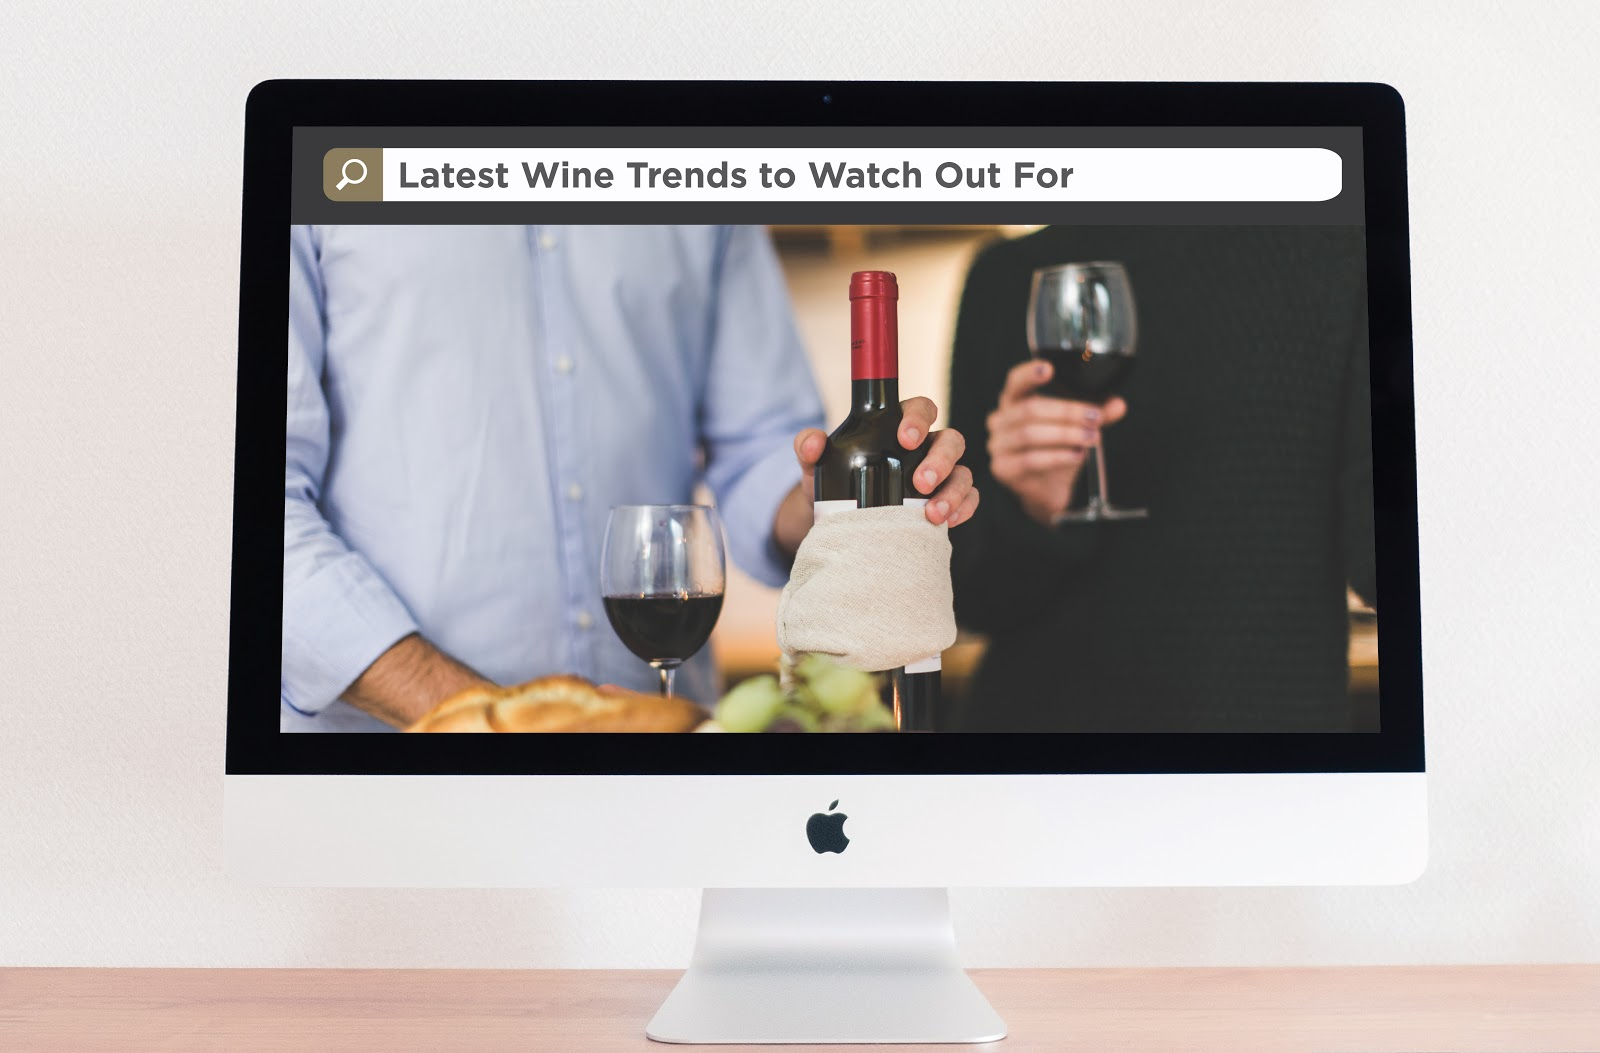 Latest Wine Trends to Watch Out For